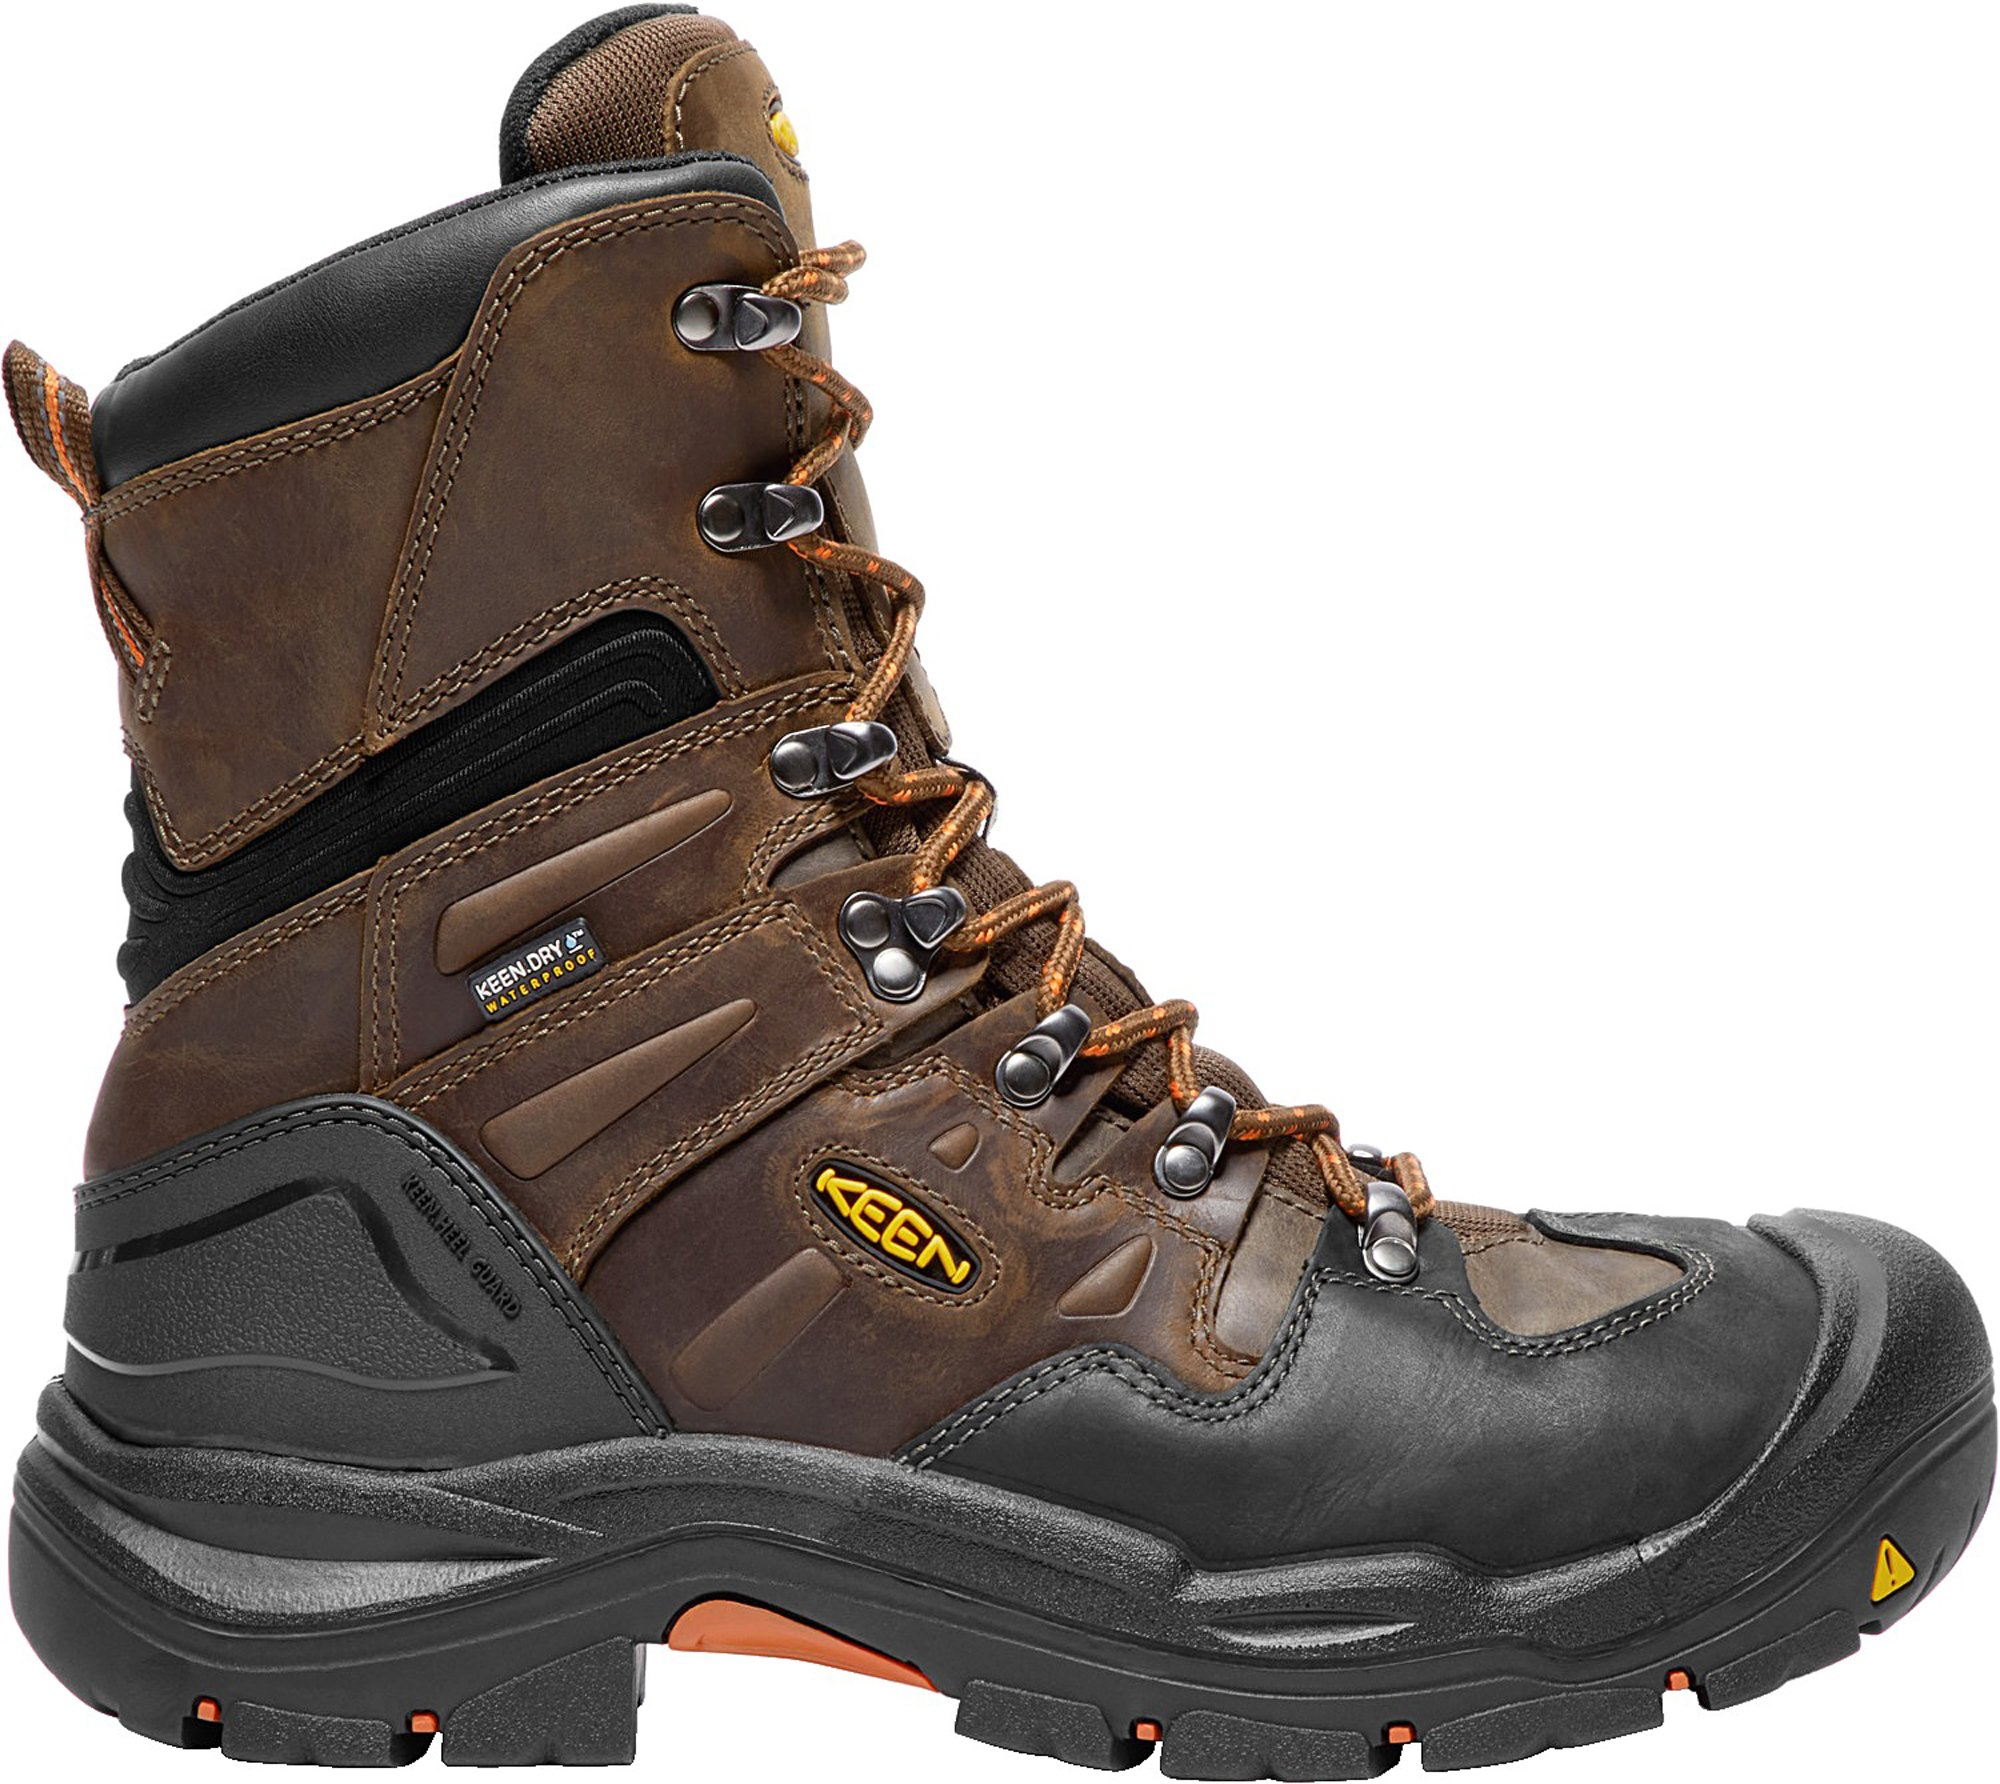 KEEN Utility Coburg 8'' WP (Steel Toe), Men's Waterproof Work Boot, Cascade Brown/Brindle, 14 D by KEEN Utility